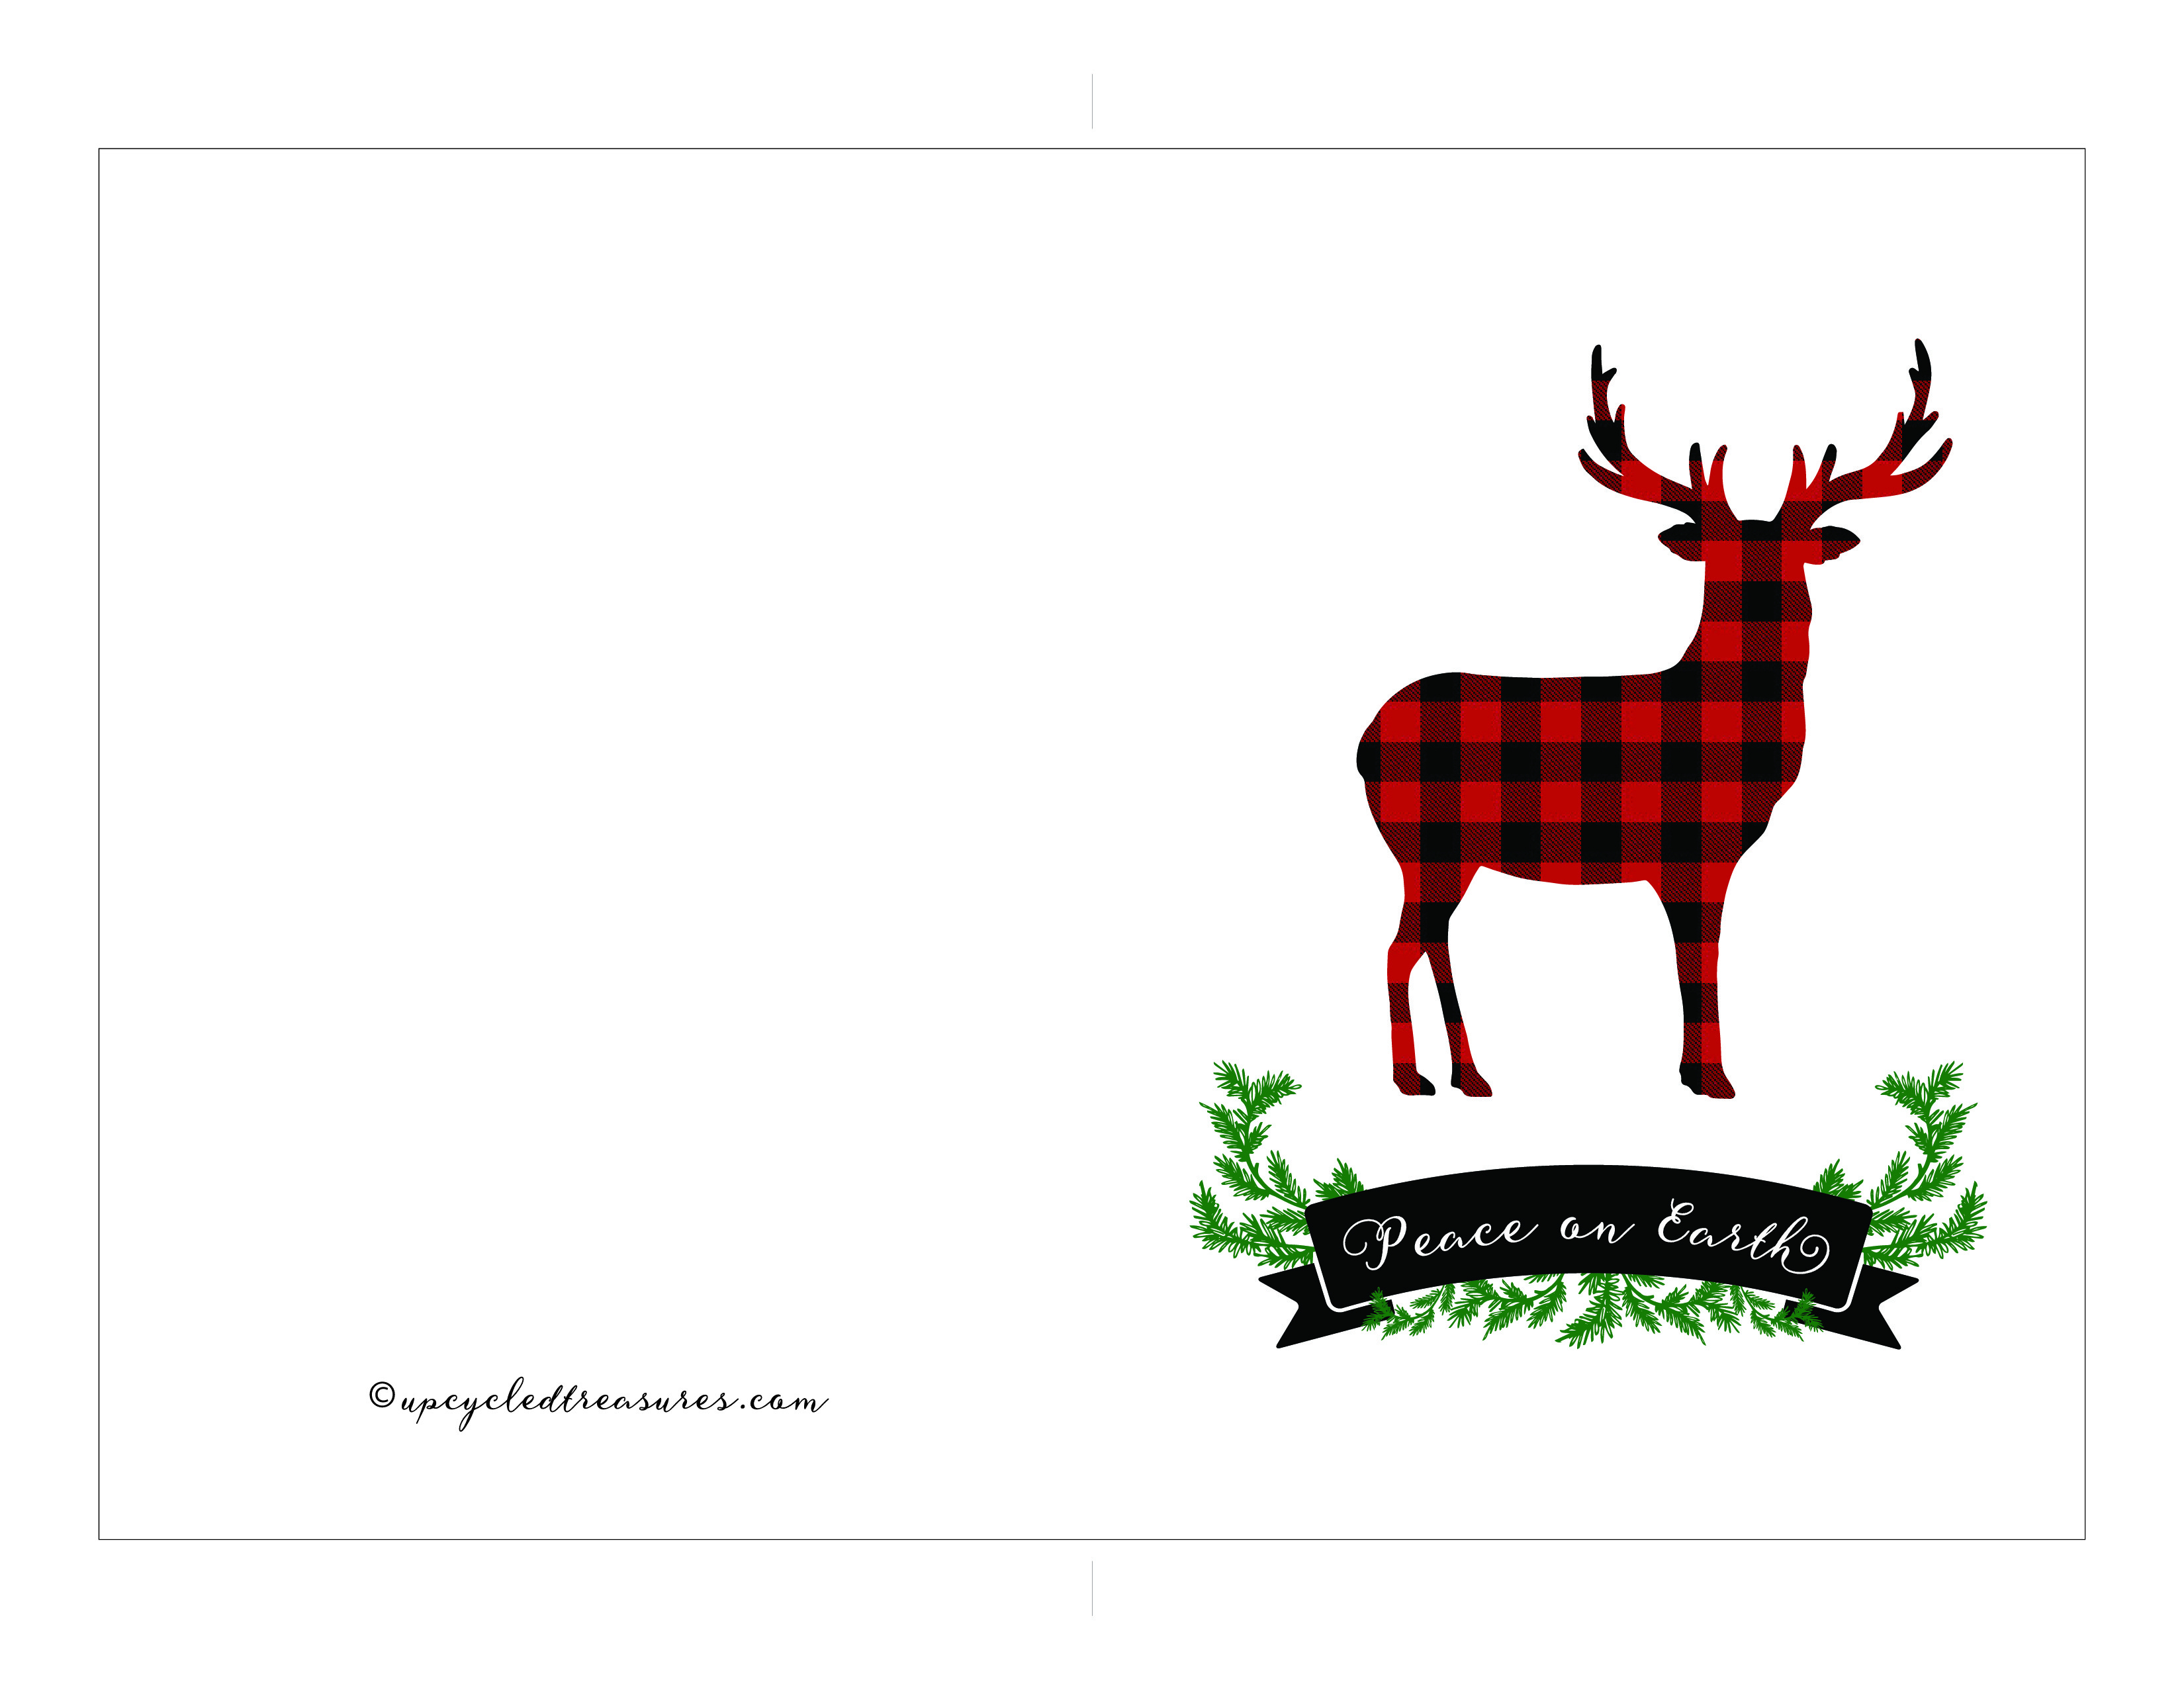 Free Printable Holiday Cards | Mountain Modern Life - Free Printable Holiday Cards